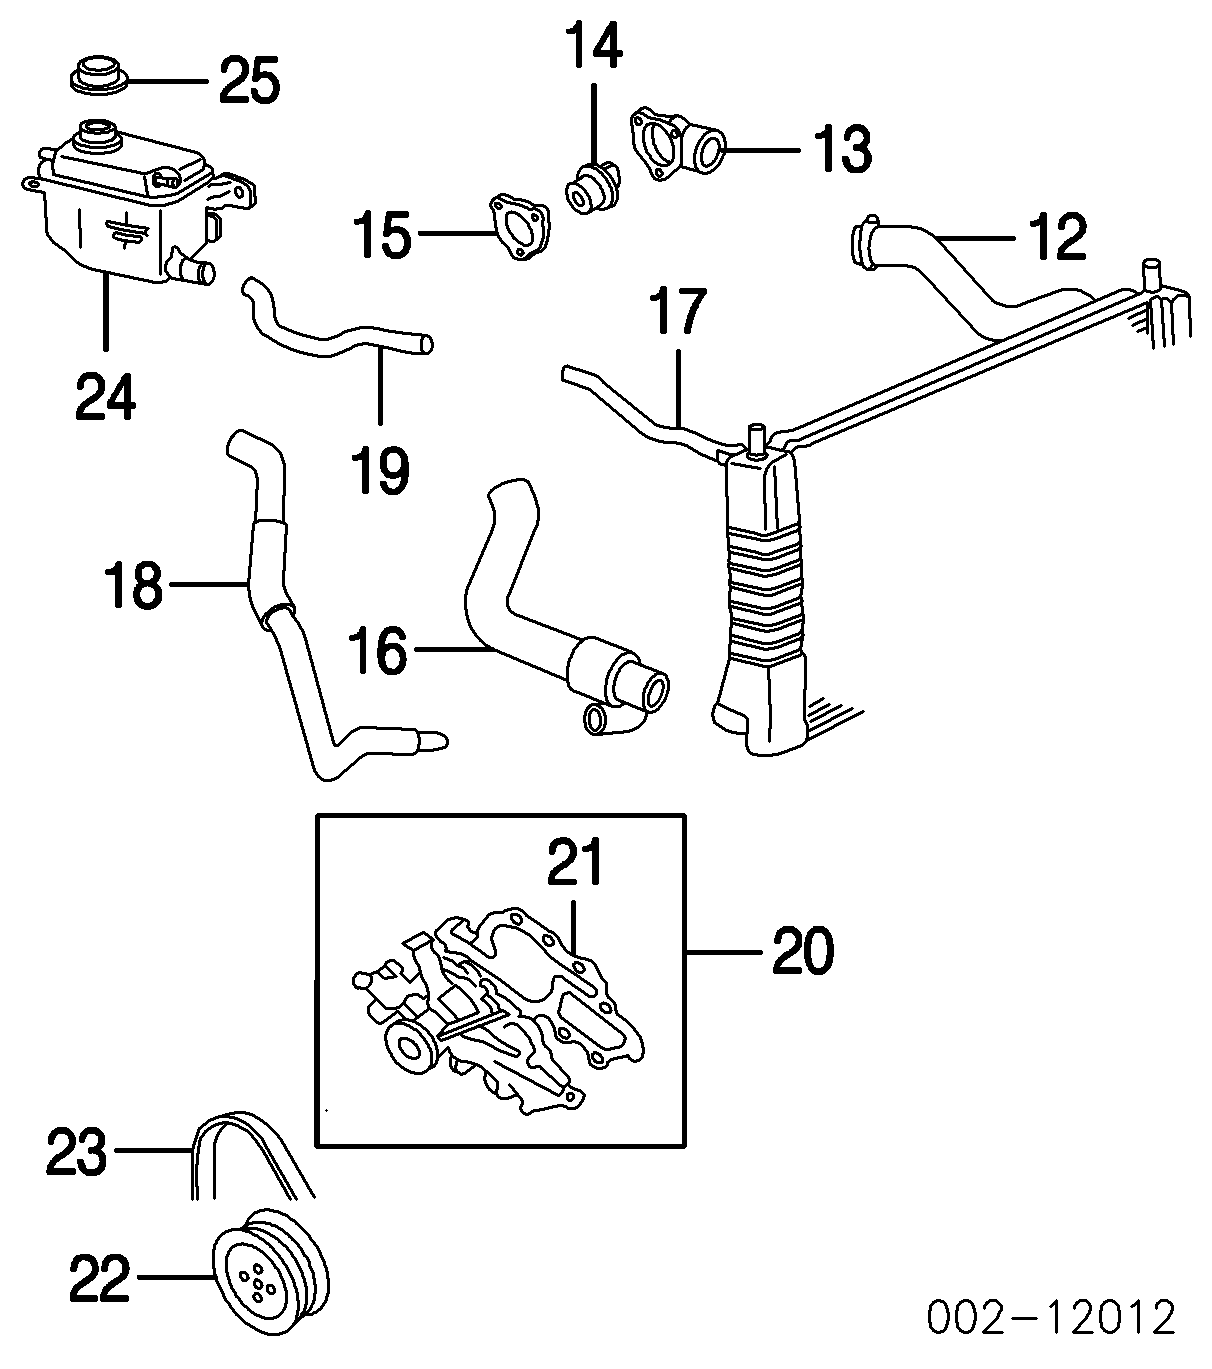 Ford Taurus Cooling System Diagram 2016 Car Release Date